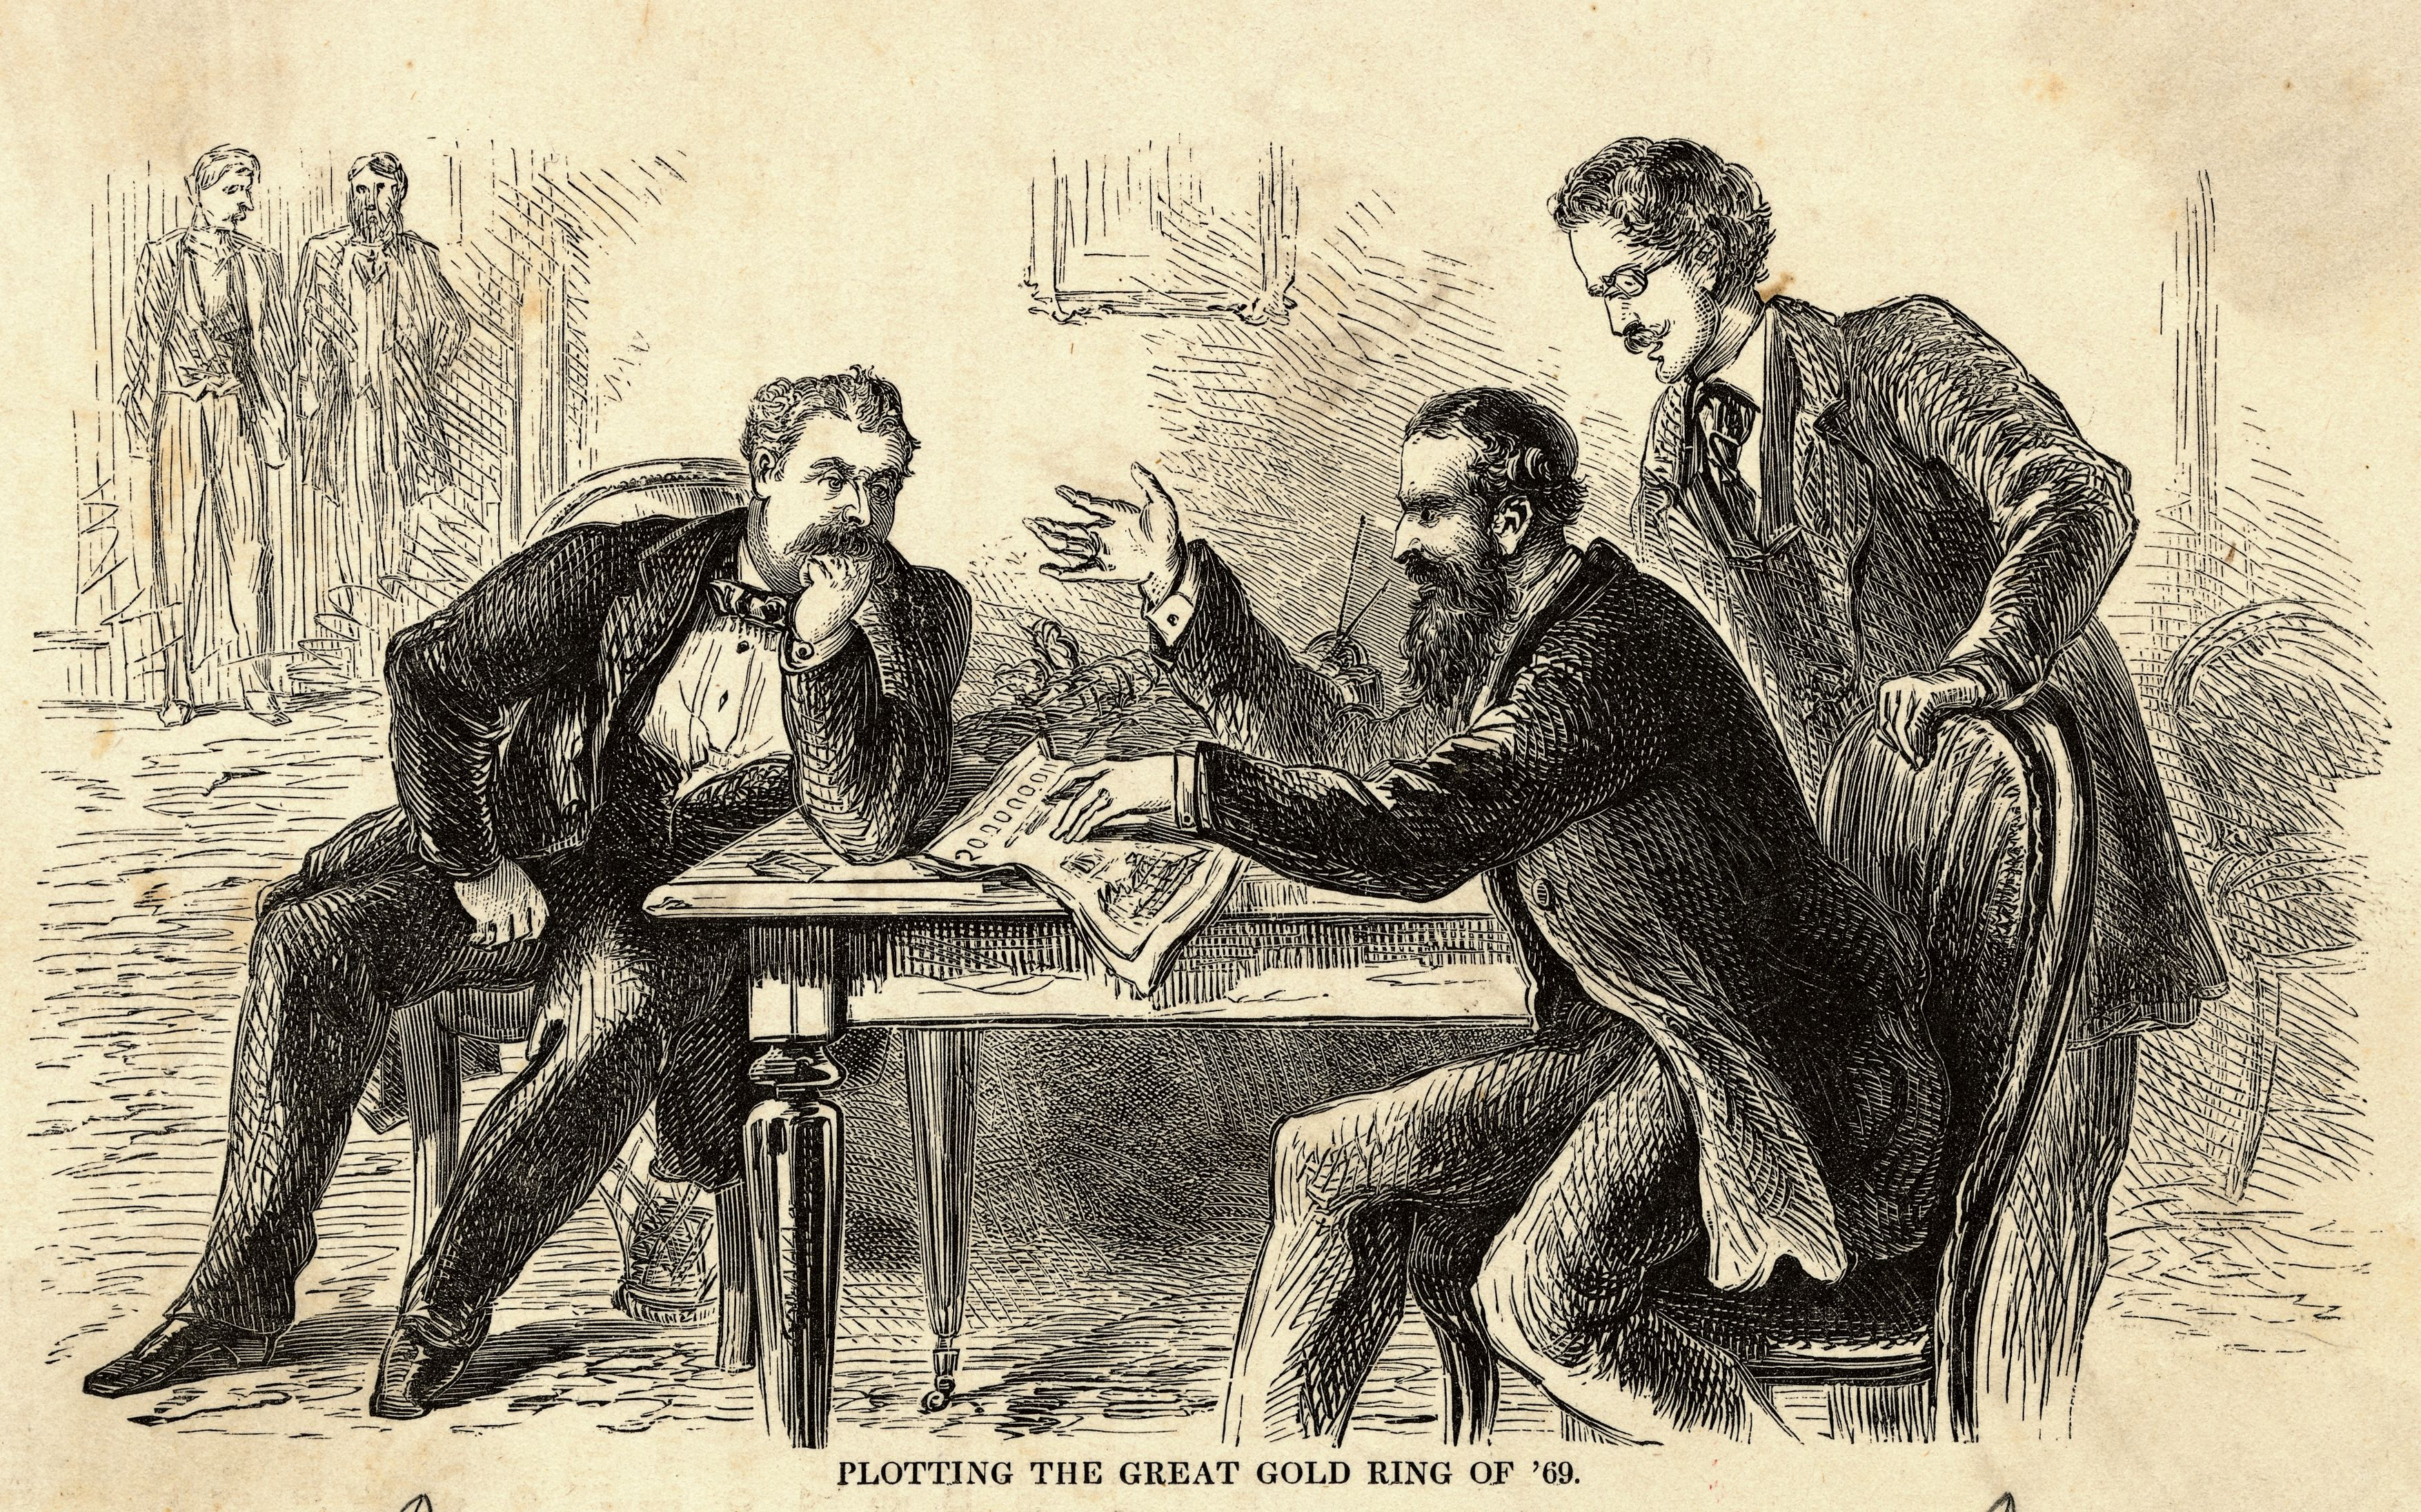 James Fisk (left) and Jay Gould (seated right) plotting the Great Gold Ring of 1869. Engraving.